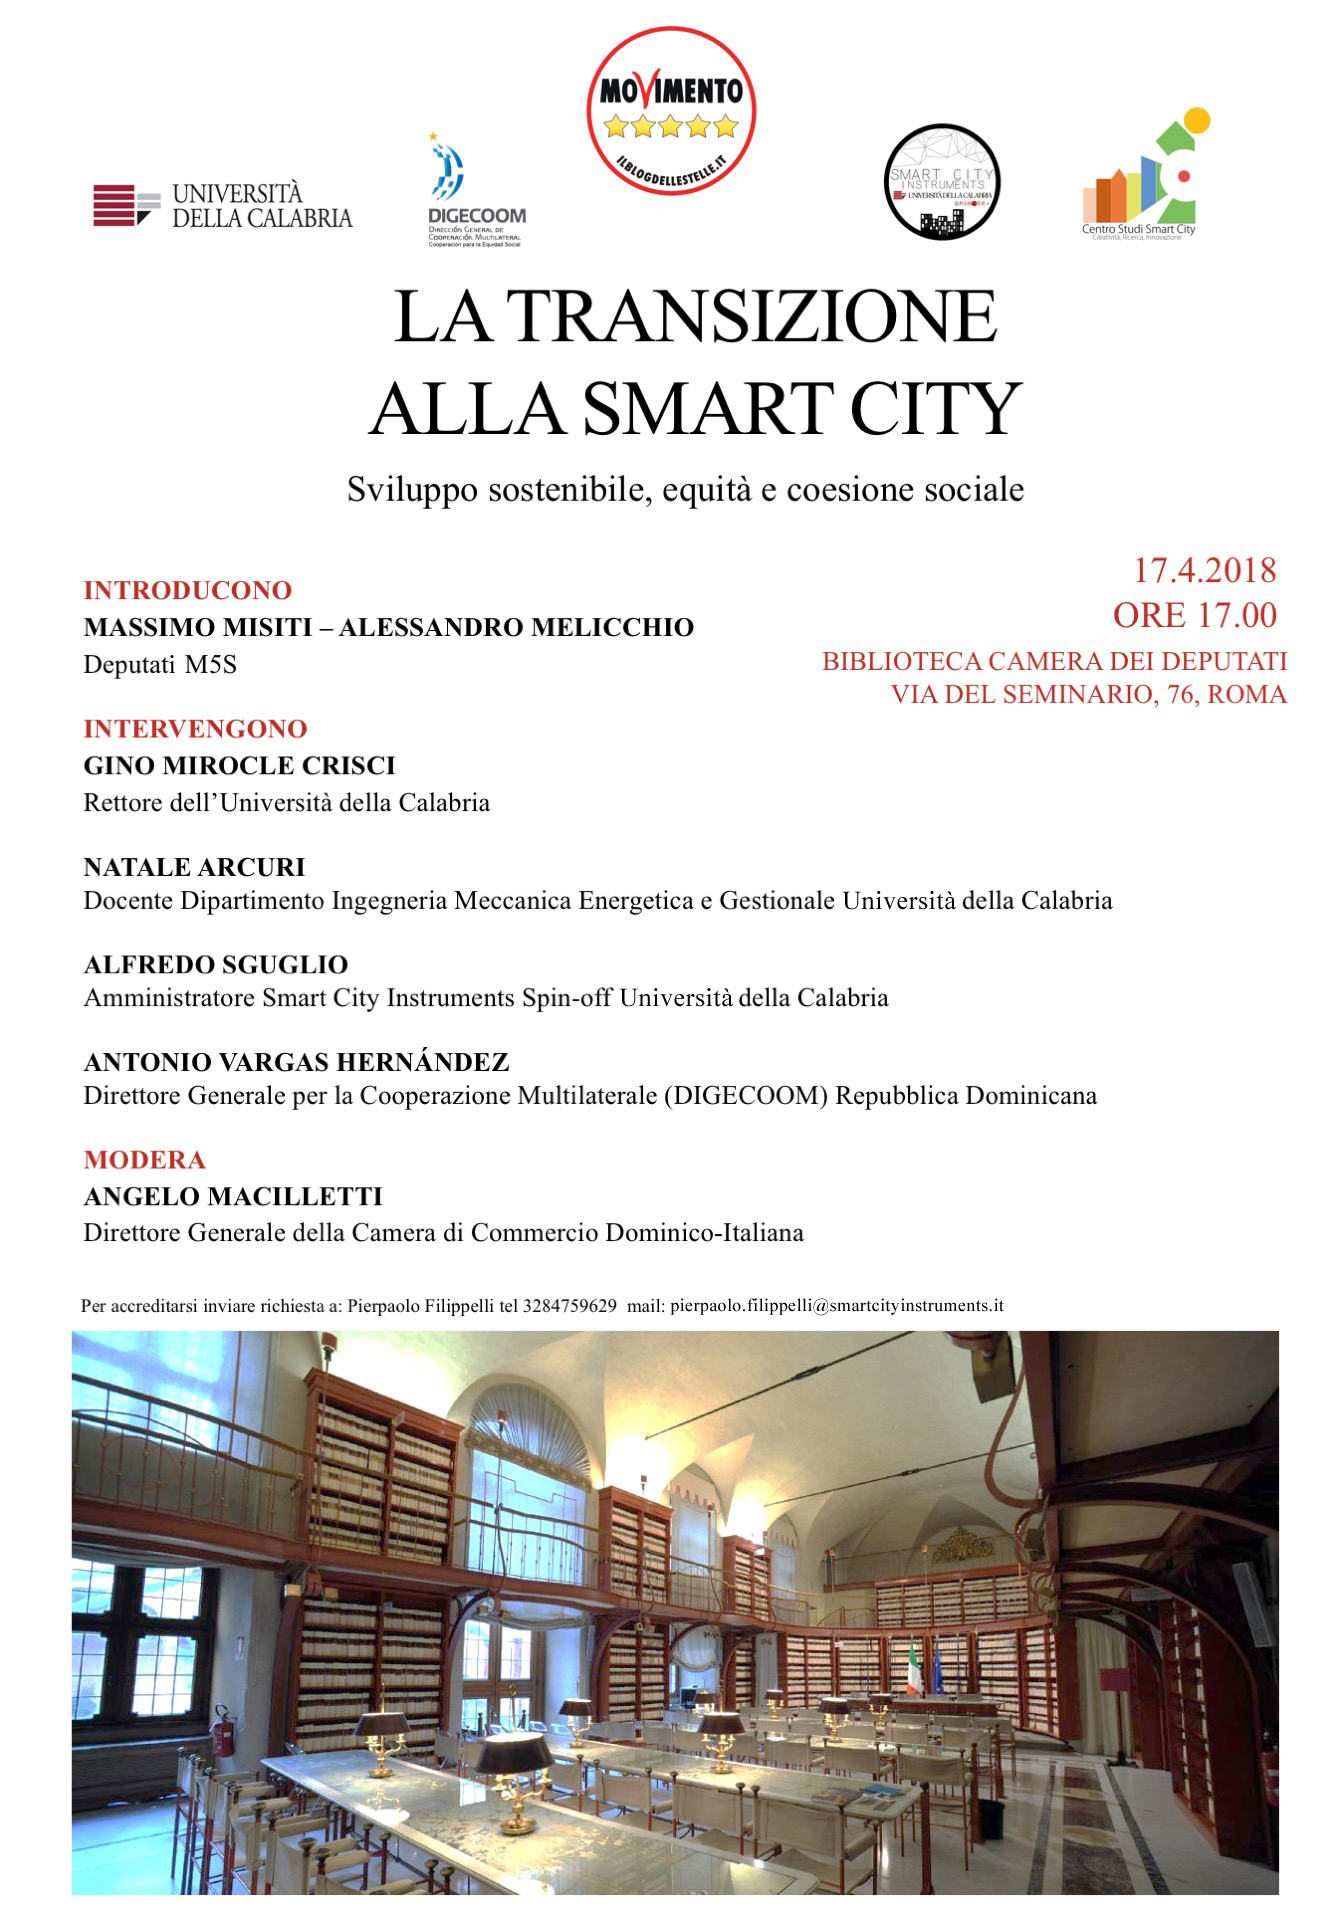 Evento – La transizione alla smart city